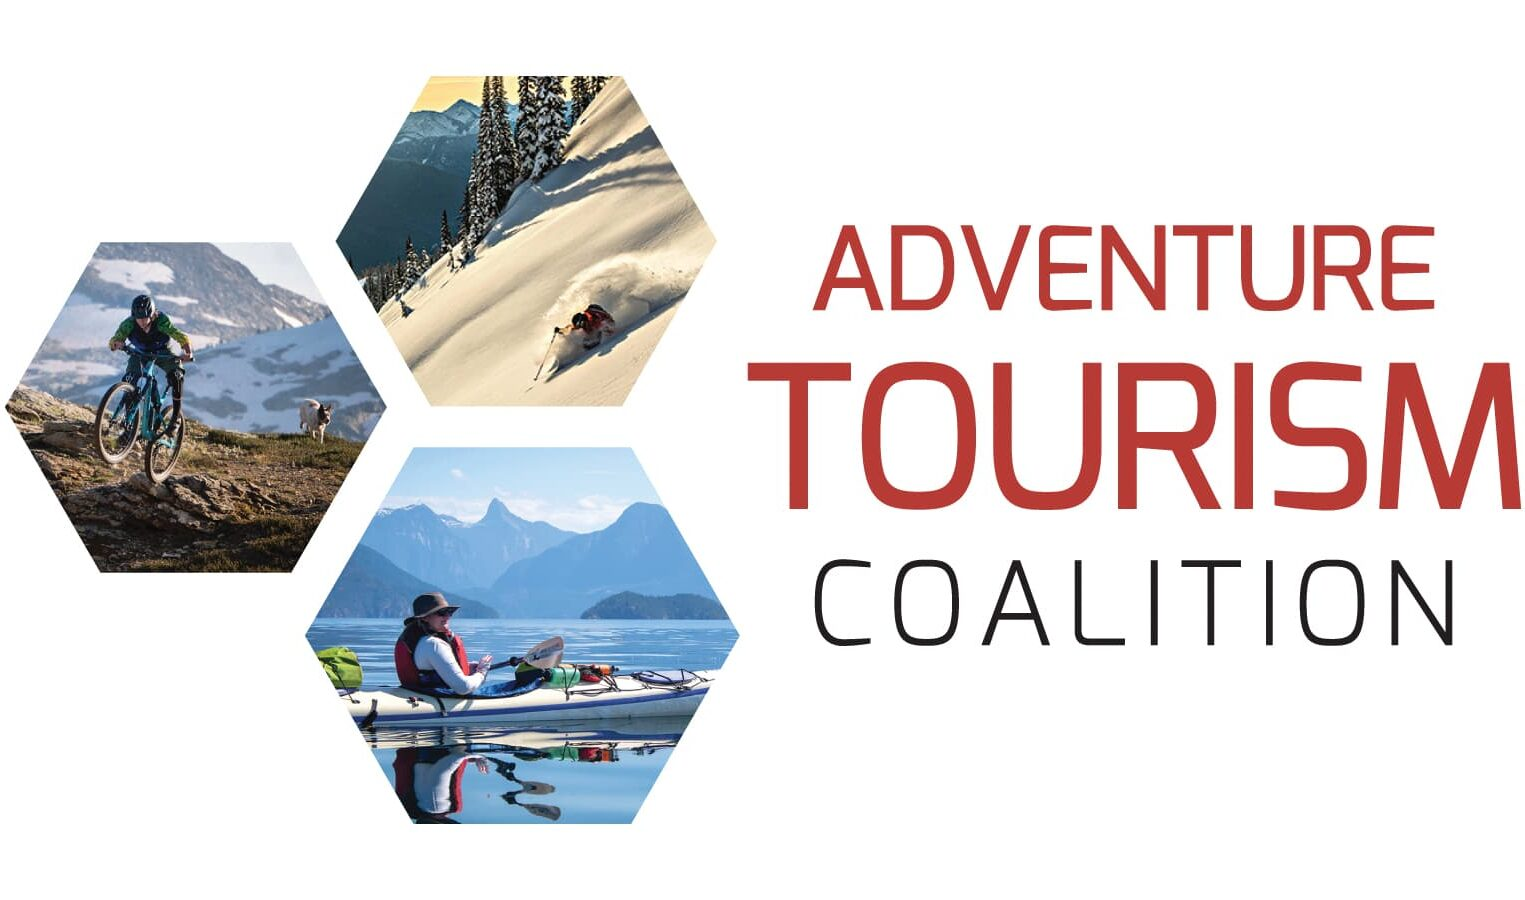 BC Adventure Tourism Coalition